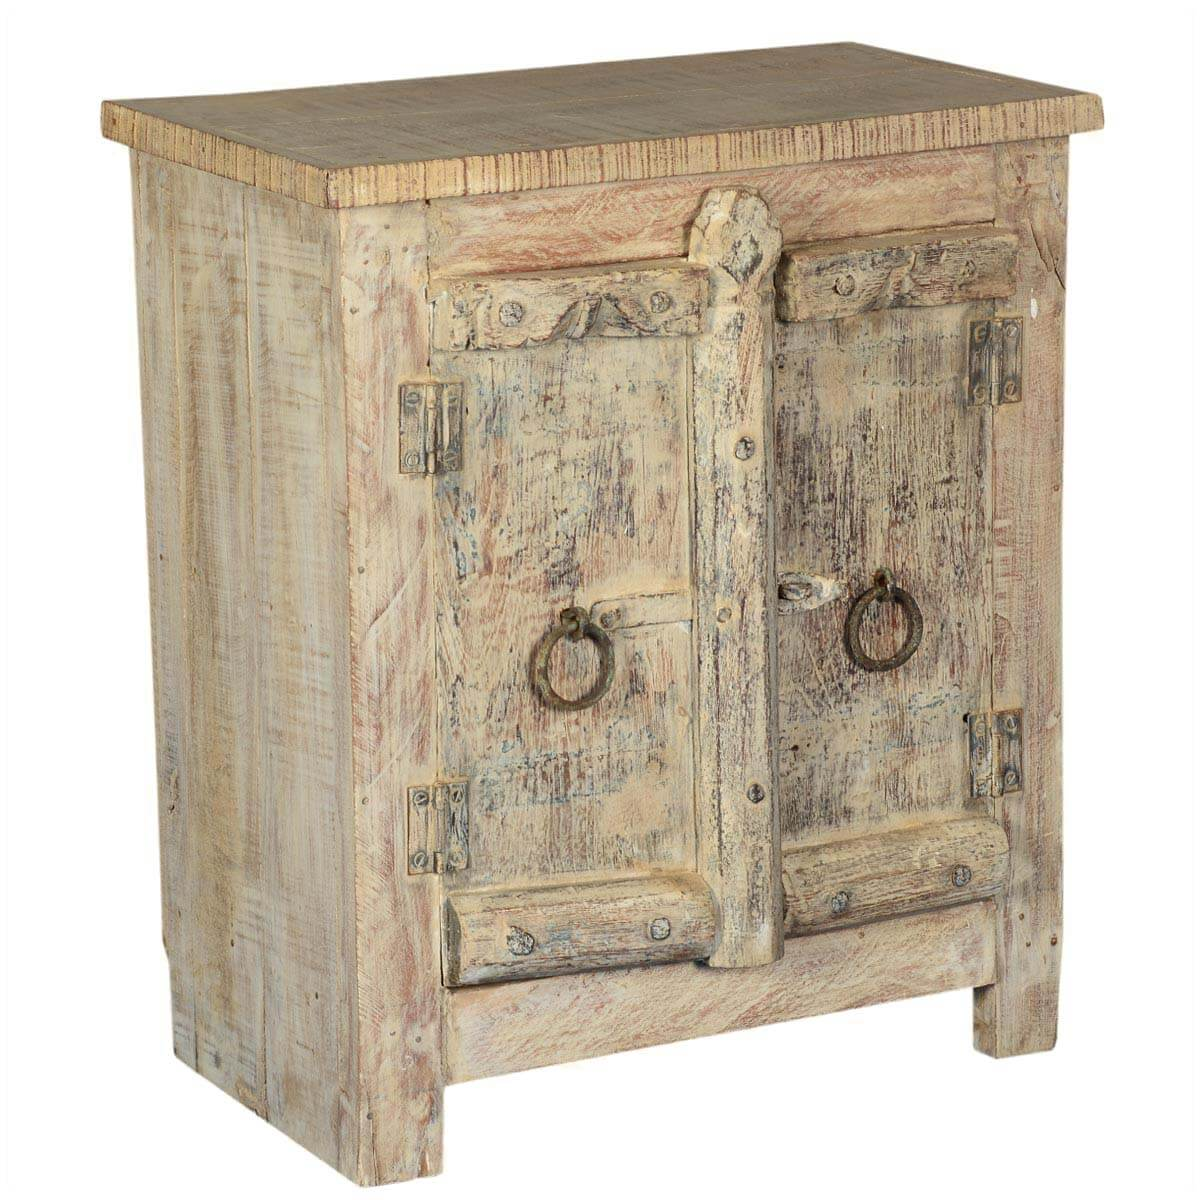 amish door old wood small rustic accent end table storage cabinet with drawer and hover zoom youth furniture long behind sofa brown cushions black living room ideas unpainted